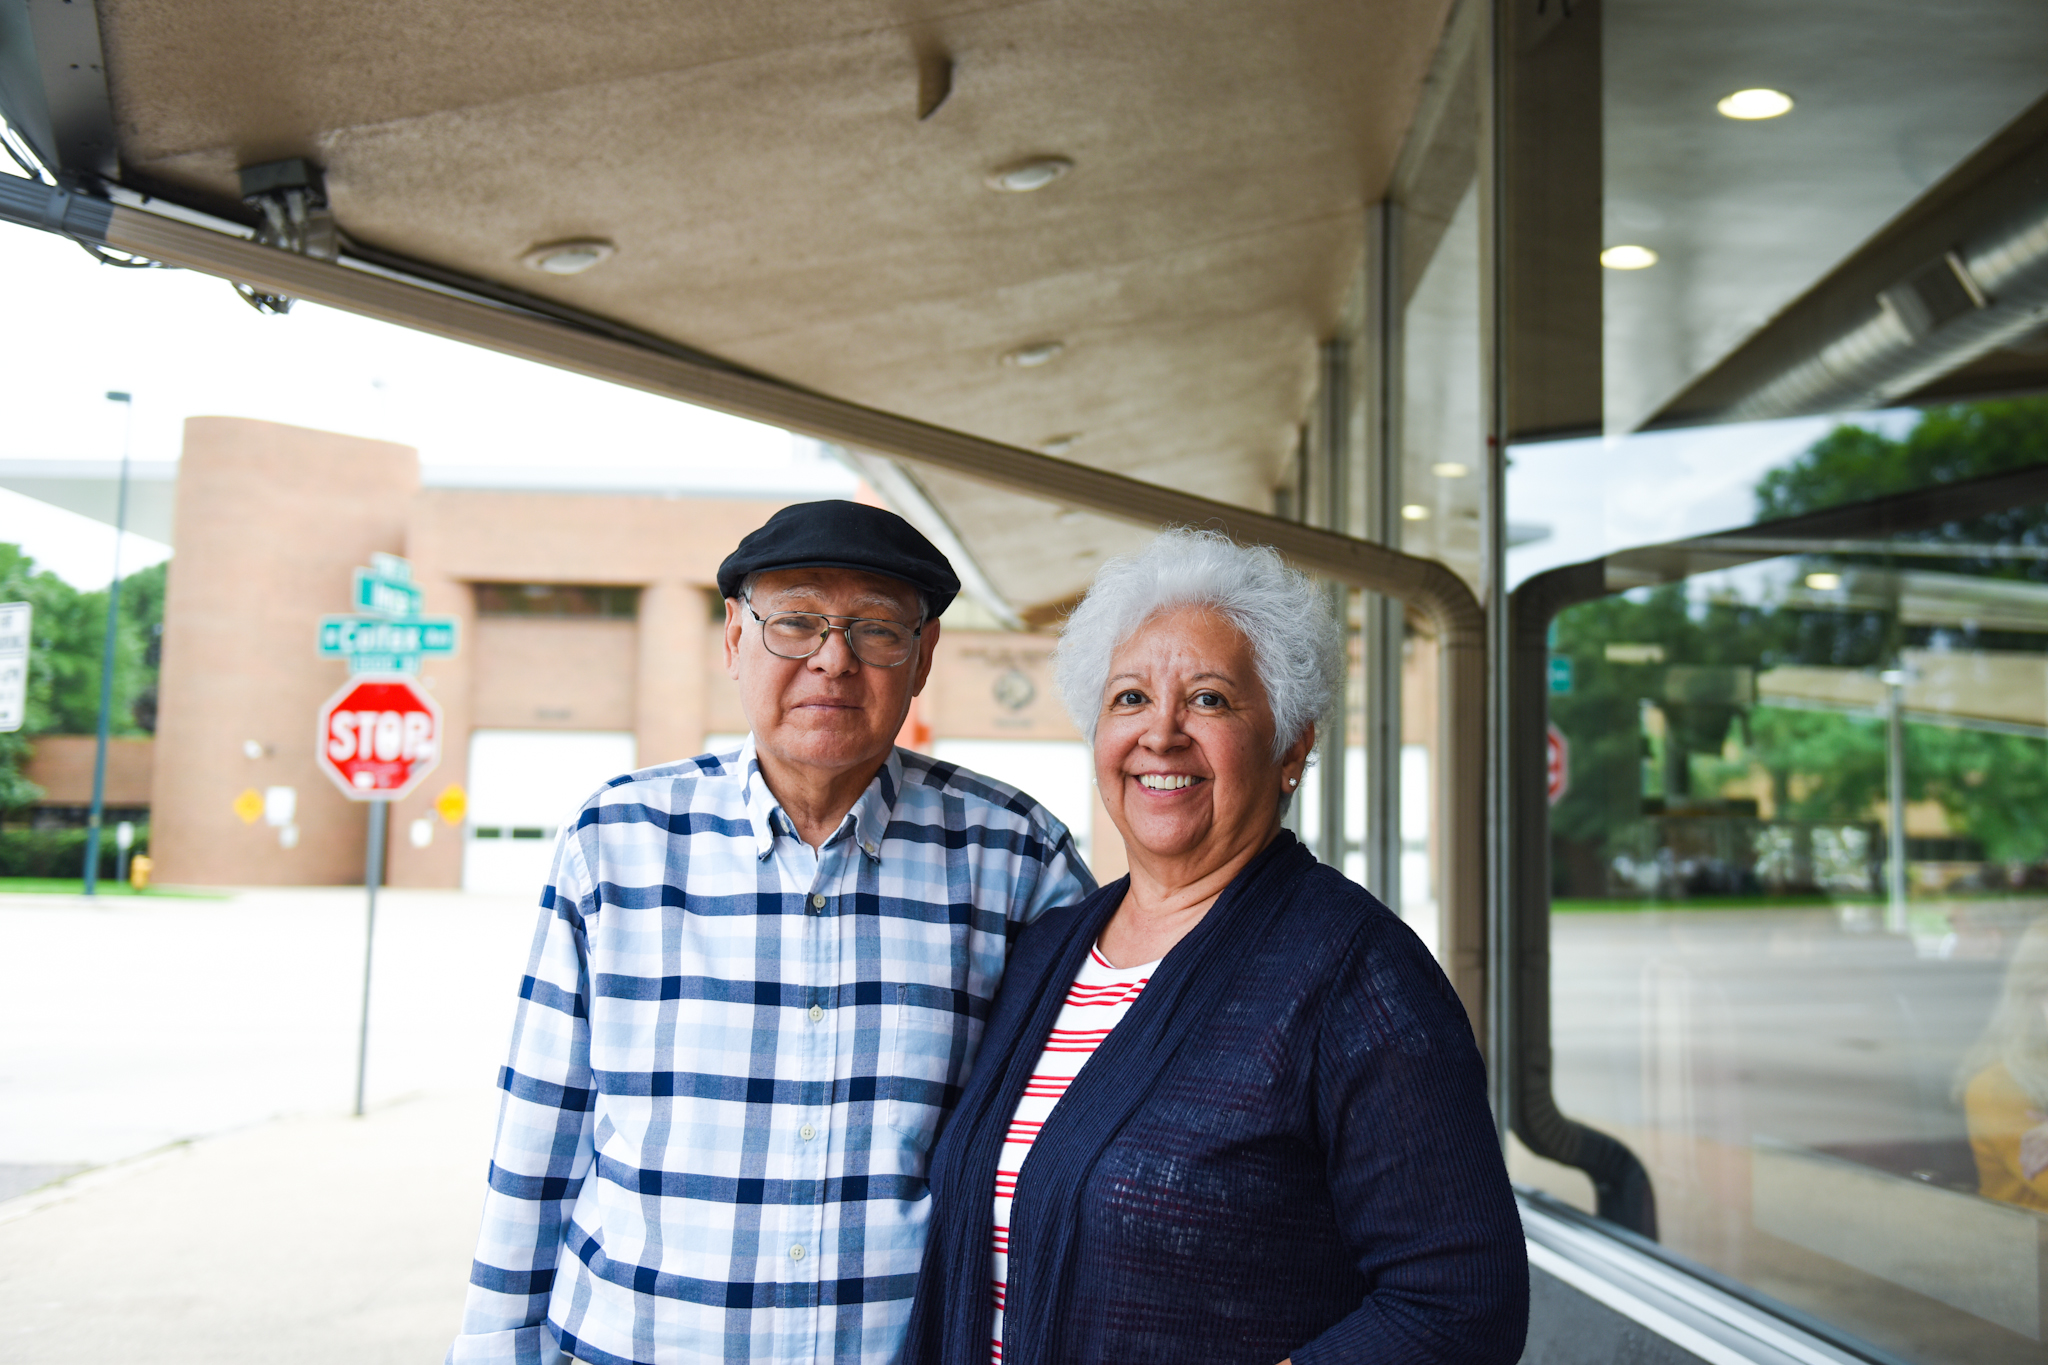 2 p.m.: Michael and Phyllis Marquez had their first date at the Denver Diner in 1971. On August 3, 2018, they celebrated their daughter Valerie's birthday at the restaurant.